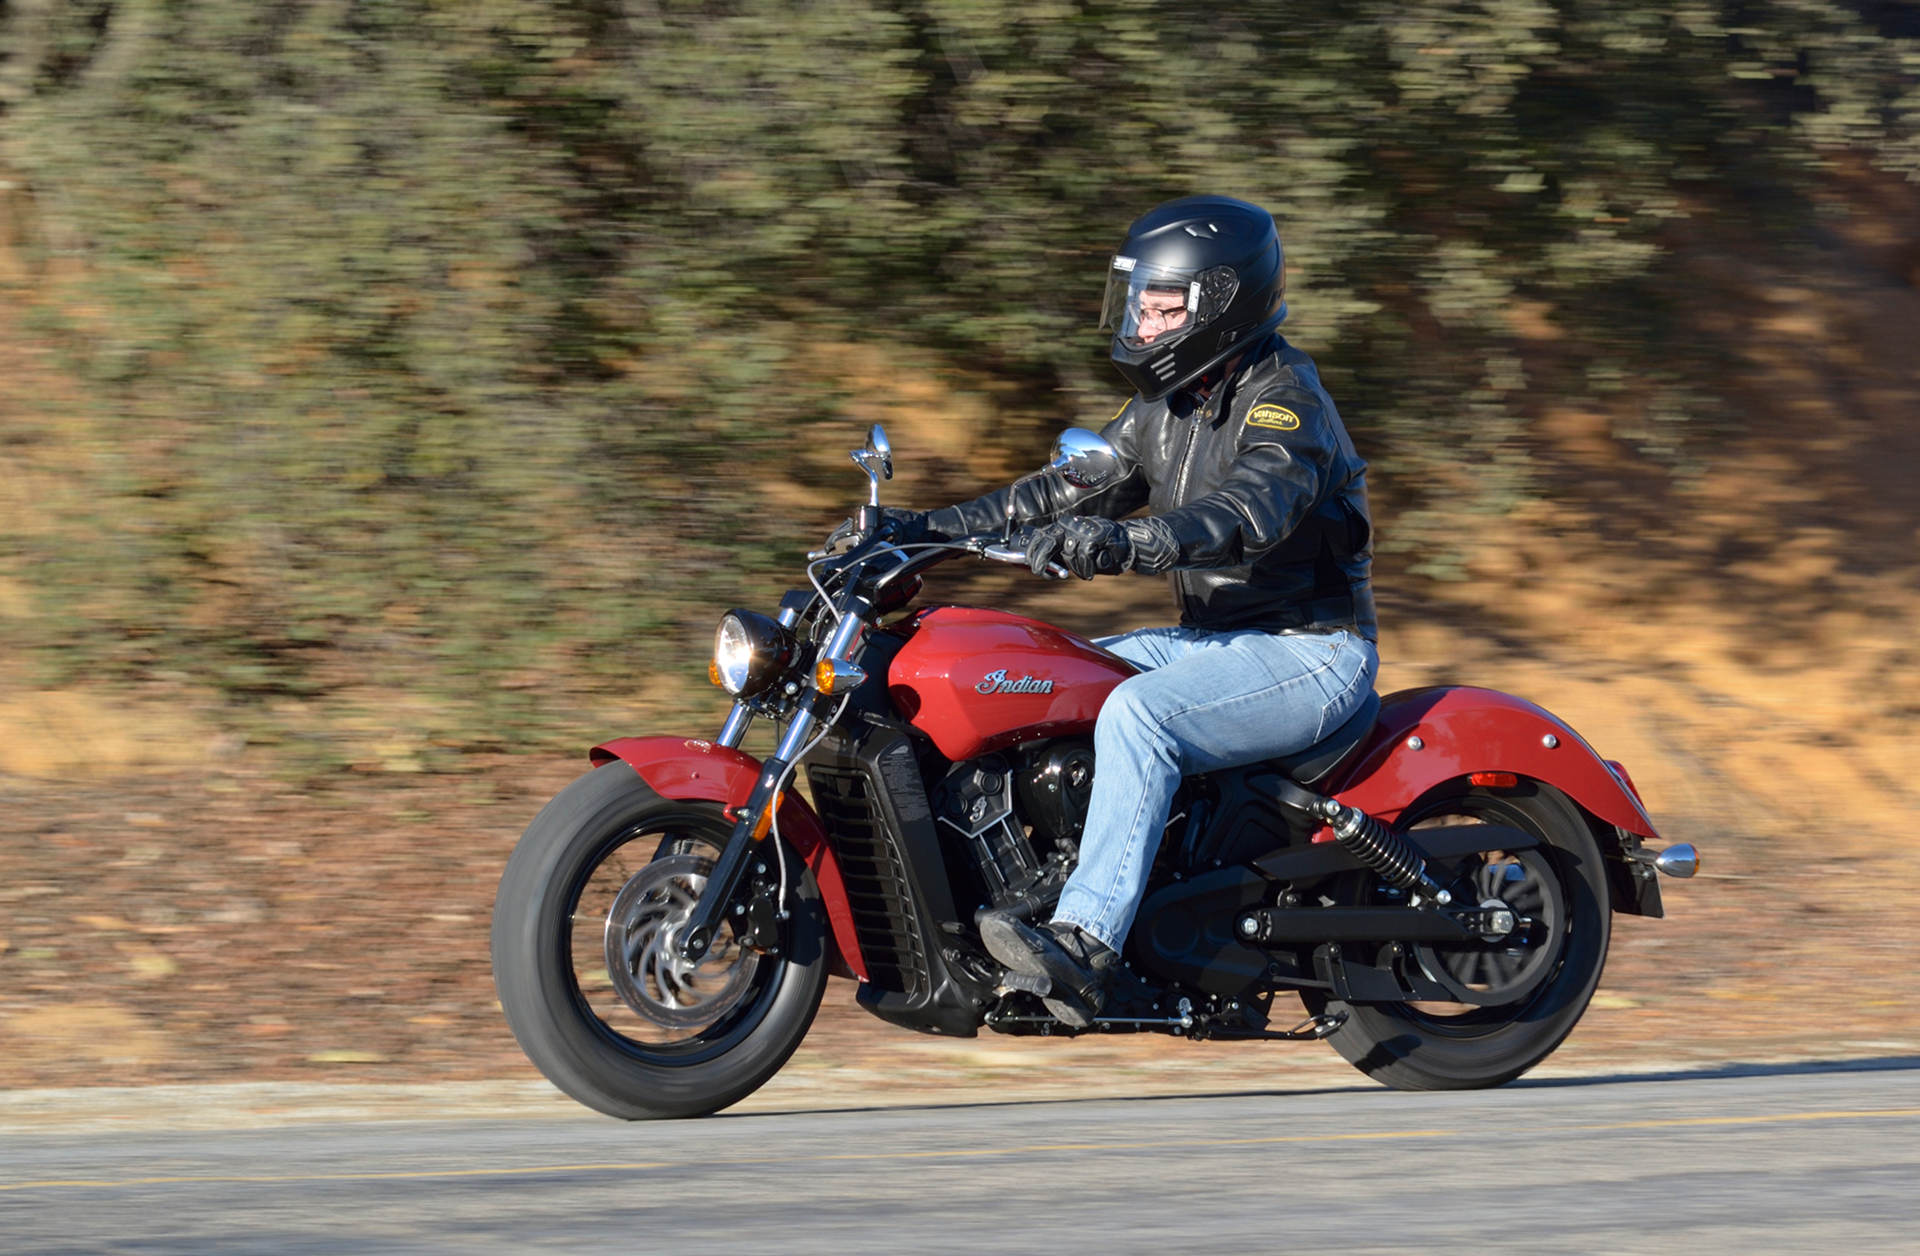 2016 Indian Scout Sixty MD Ride Review Part 1